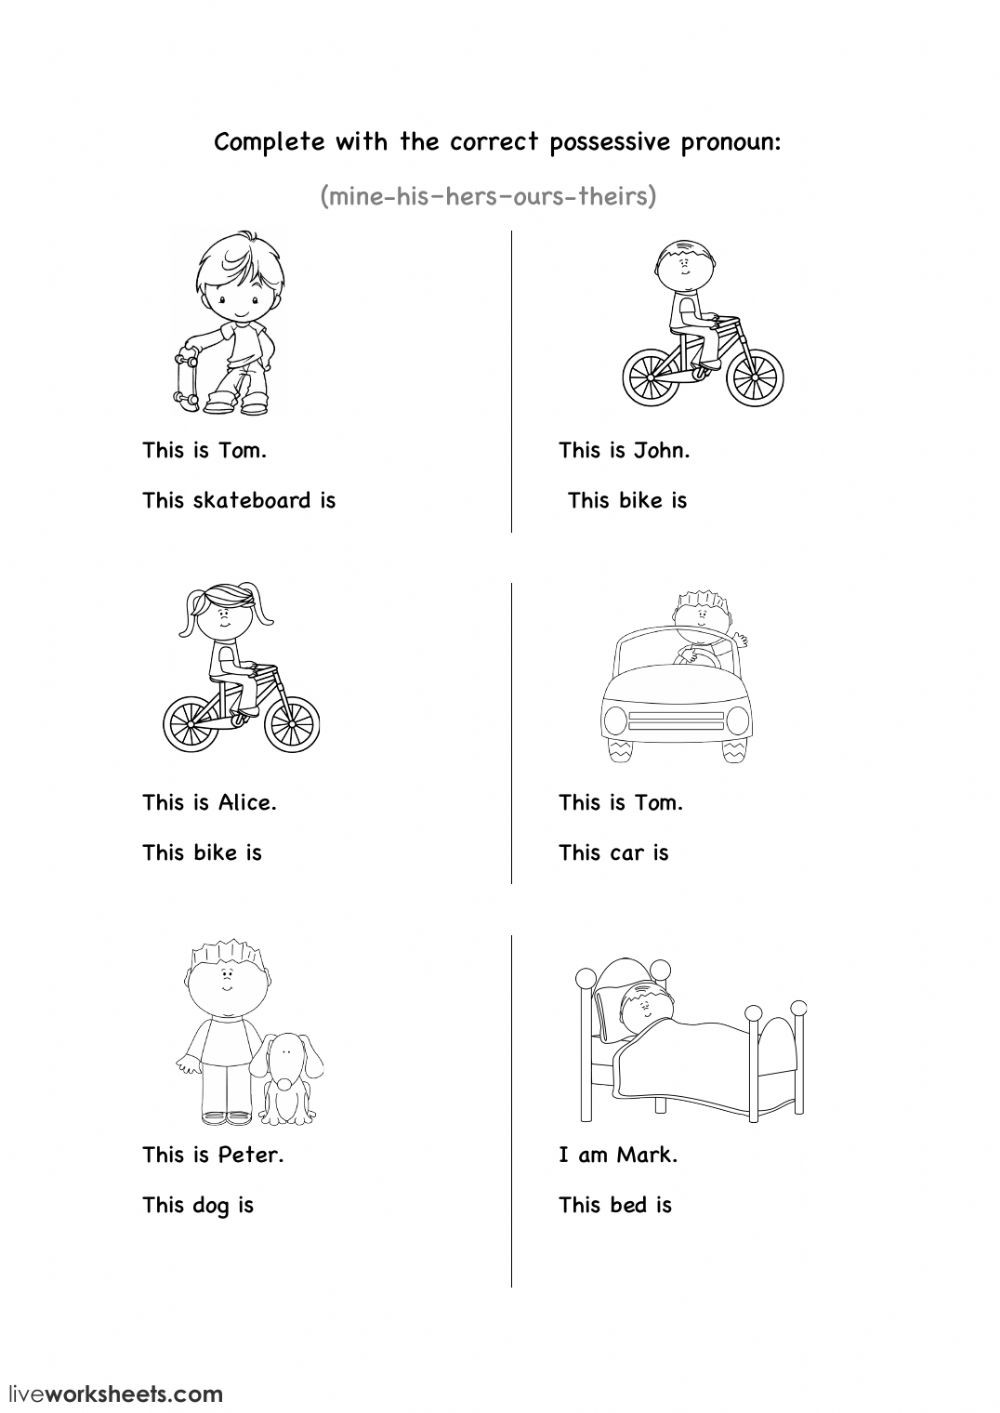 Possessive Pronouns Worksheet 2nd Grade Possessive Pronouns Worksheet